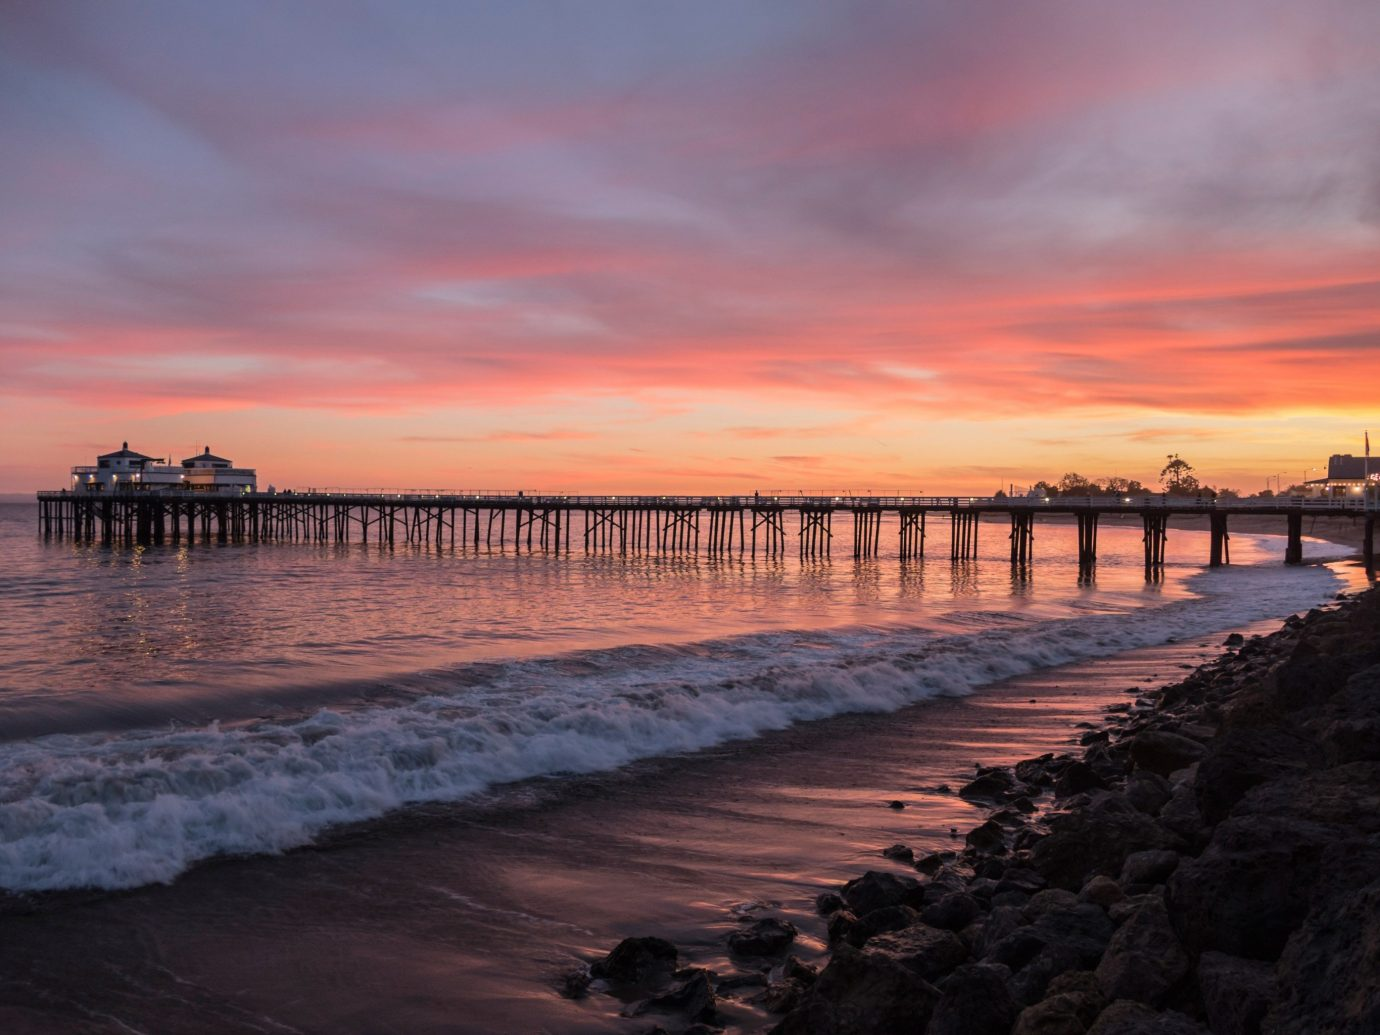 Jetsetter Guides outdoor sky water scene pier Beach Sunset Sea shore sunrise Coast body of water Ocean dawn cloud horizon dusk evening wave morning afterglow reflection bay wind wave sandy several